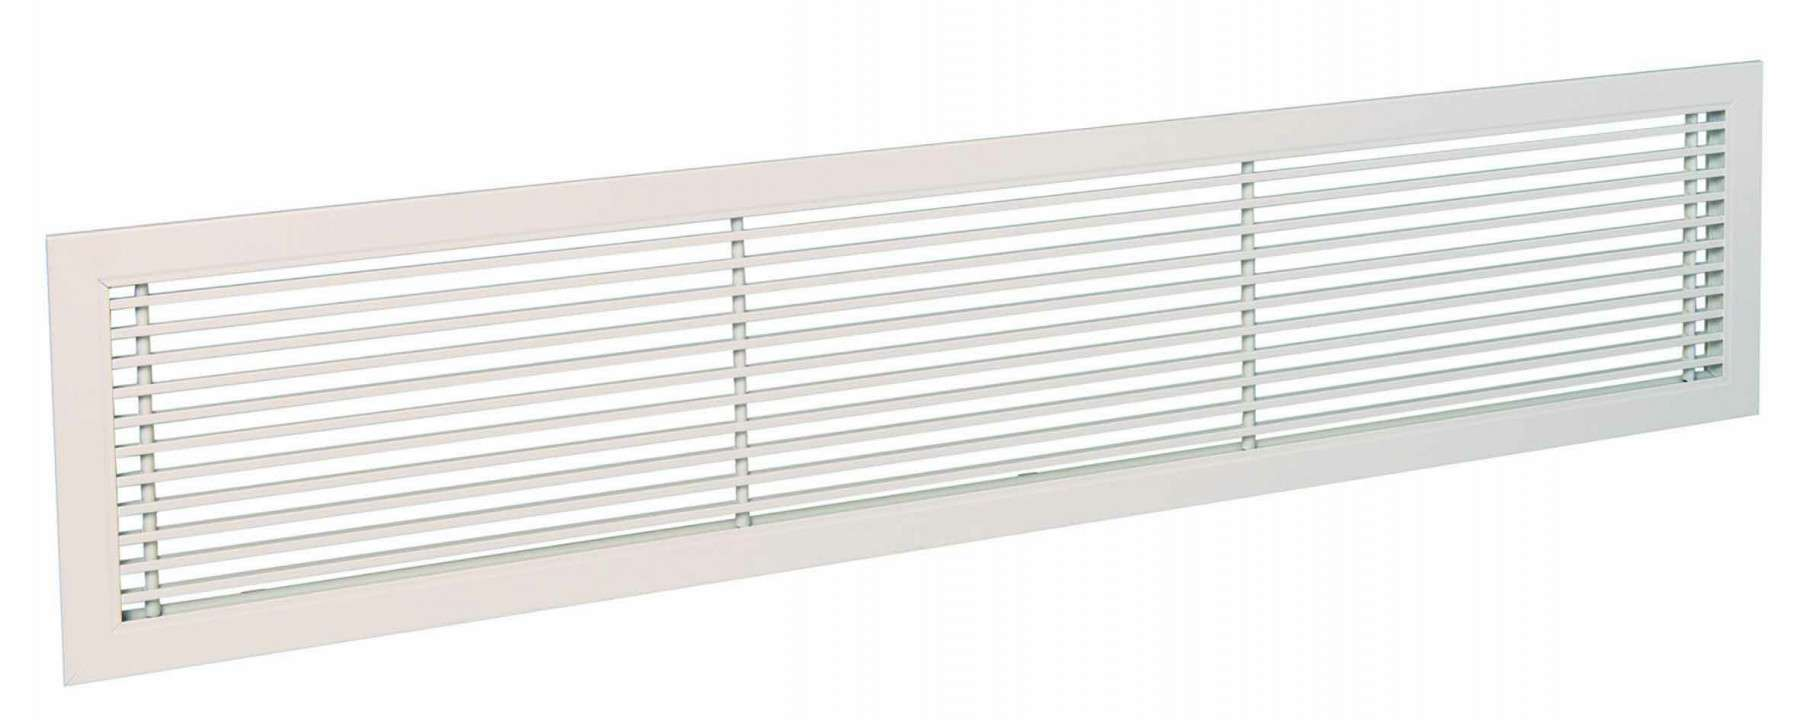 Grilles intérieures GRIDLINED WALL 1000X100 ANOD Aldes 11050248